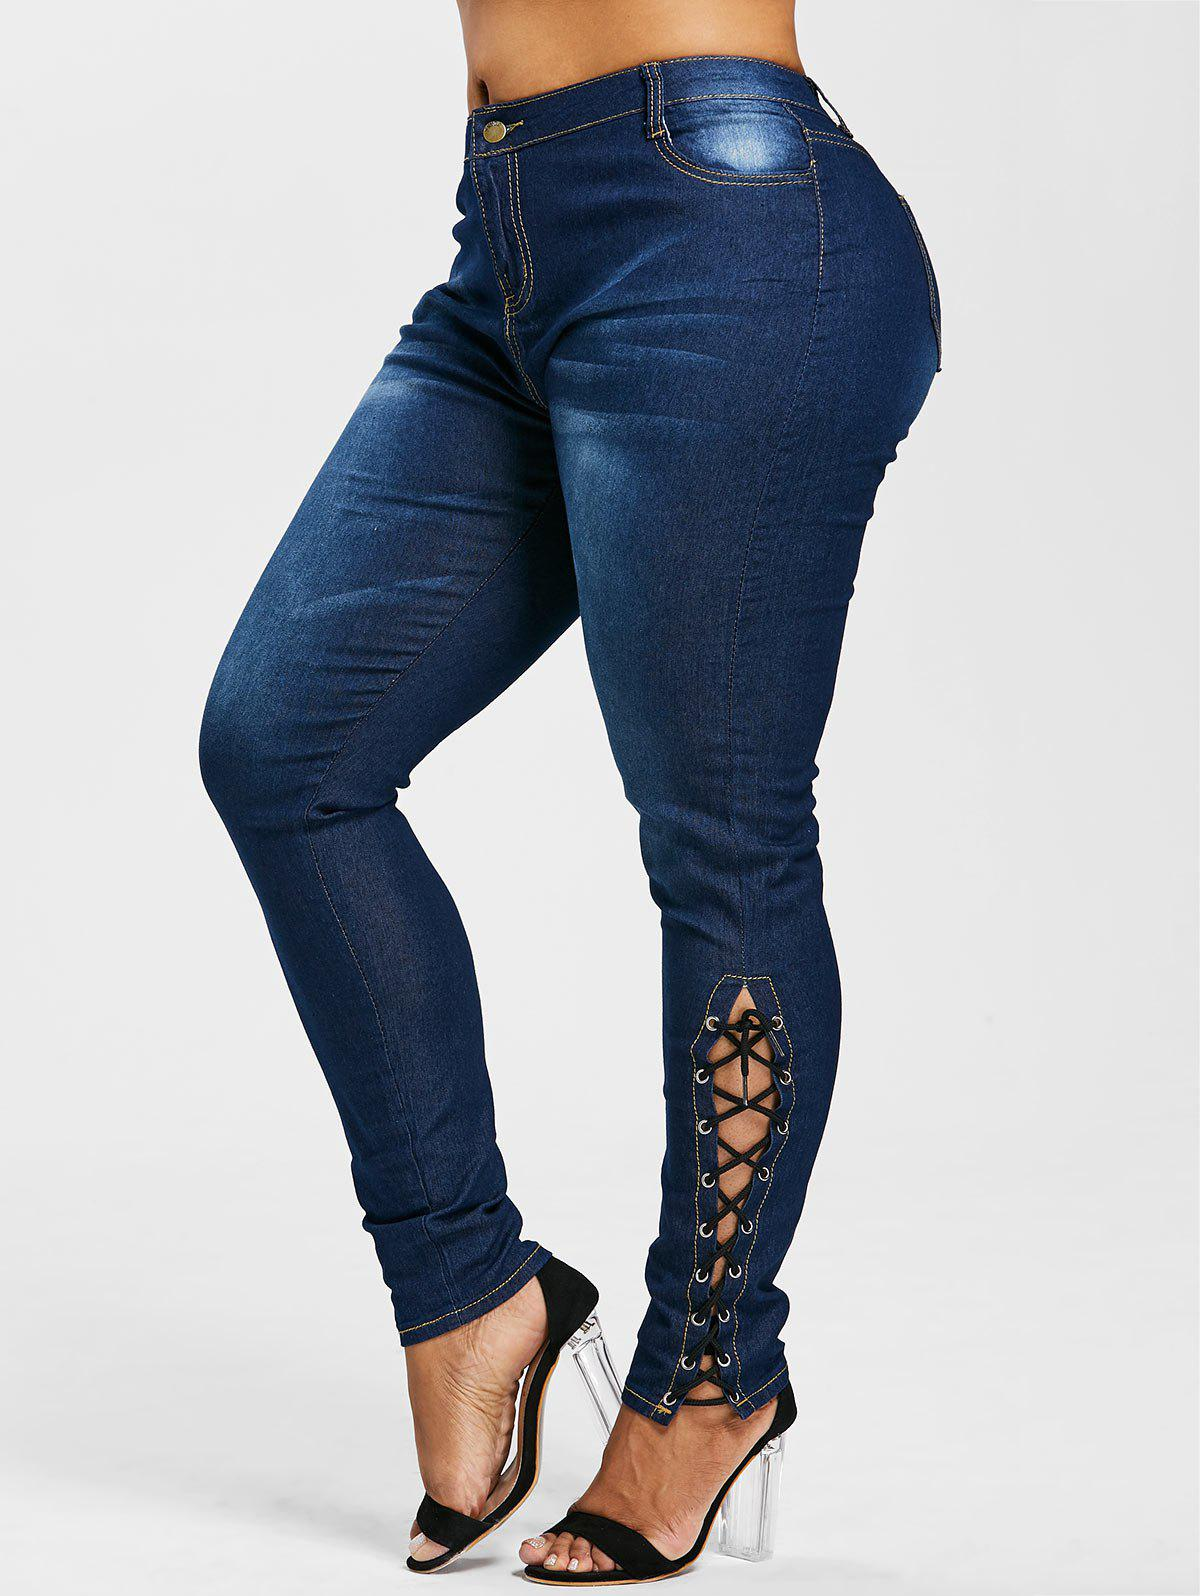 High Waist Side Lace Up Plus Size Jeans - DENIM DARK BLUE 5X